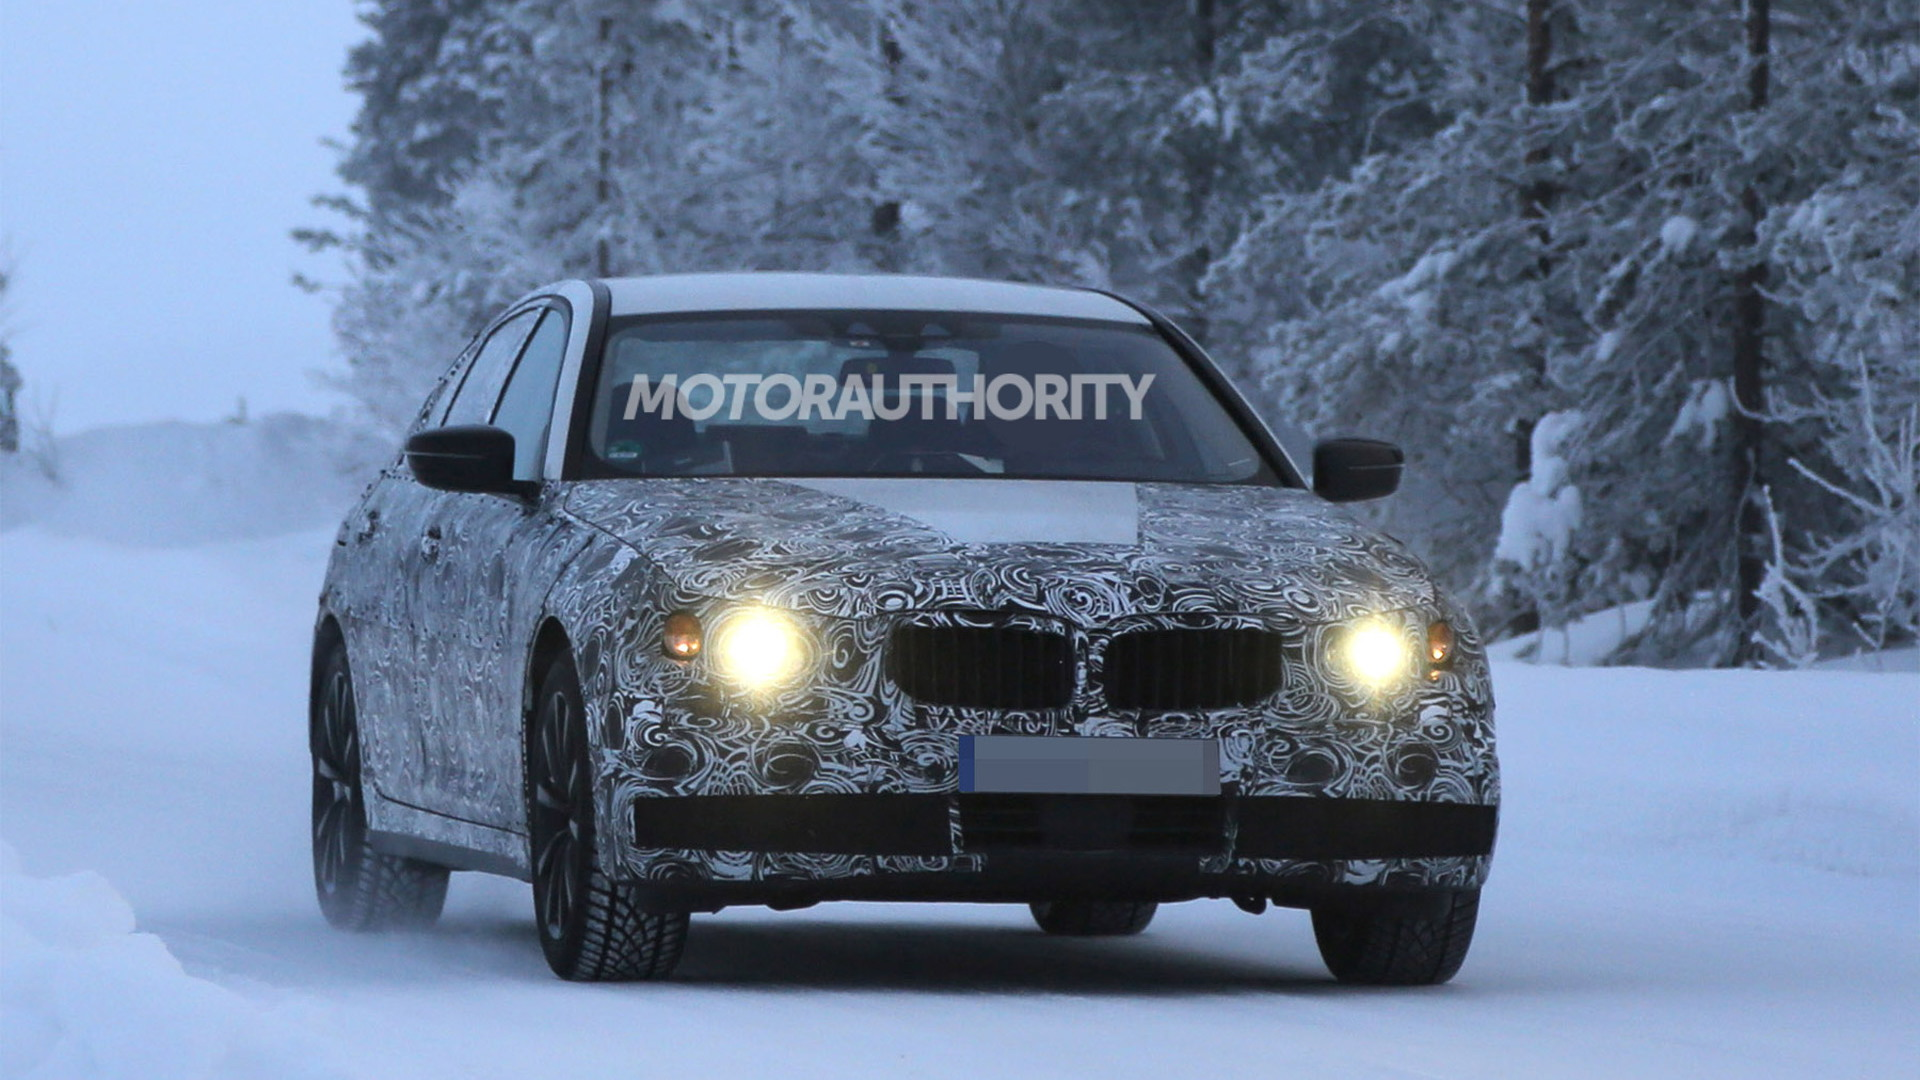 2017 BMW 5-Series eDrive Plug-In Hybrid spy shots - Image via S. Baldauf/SB-Medien